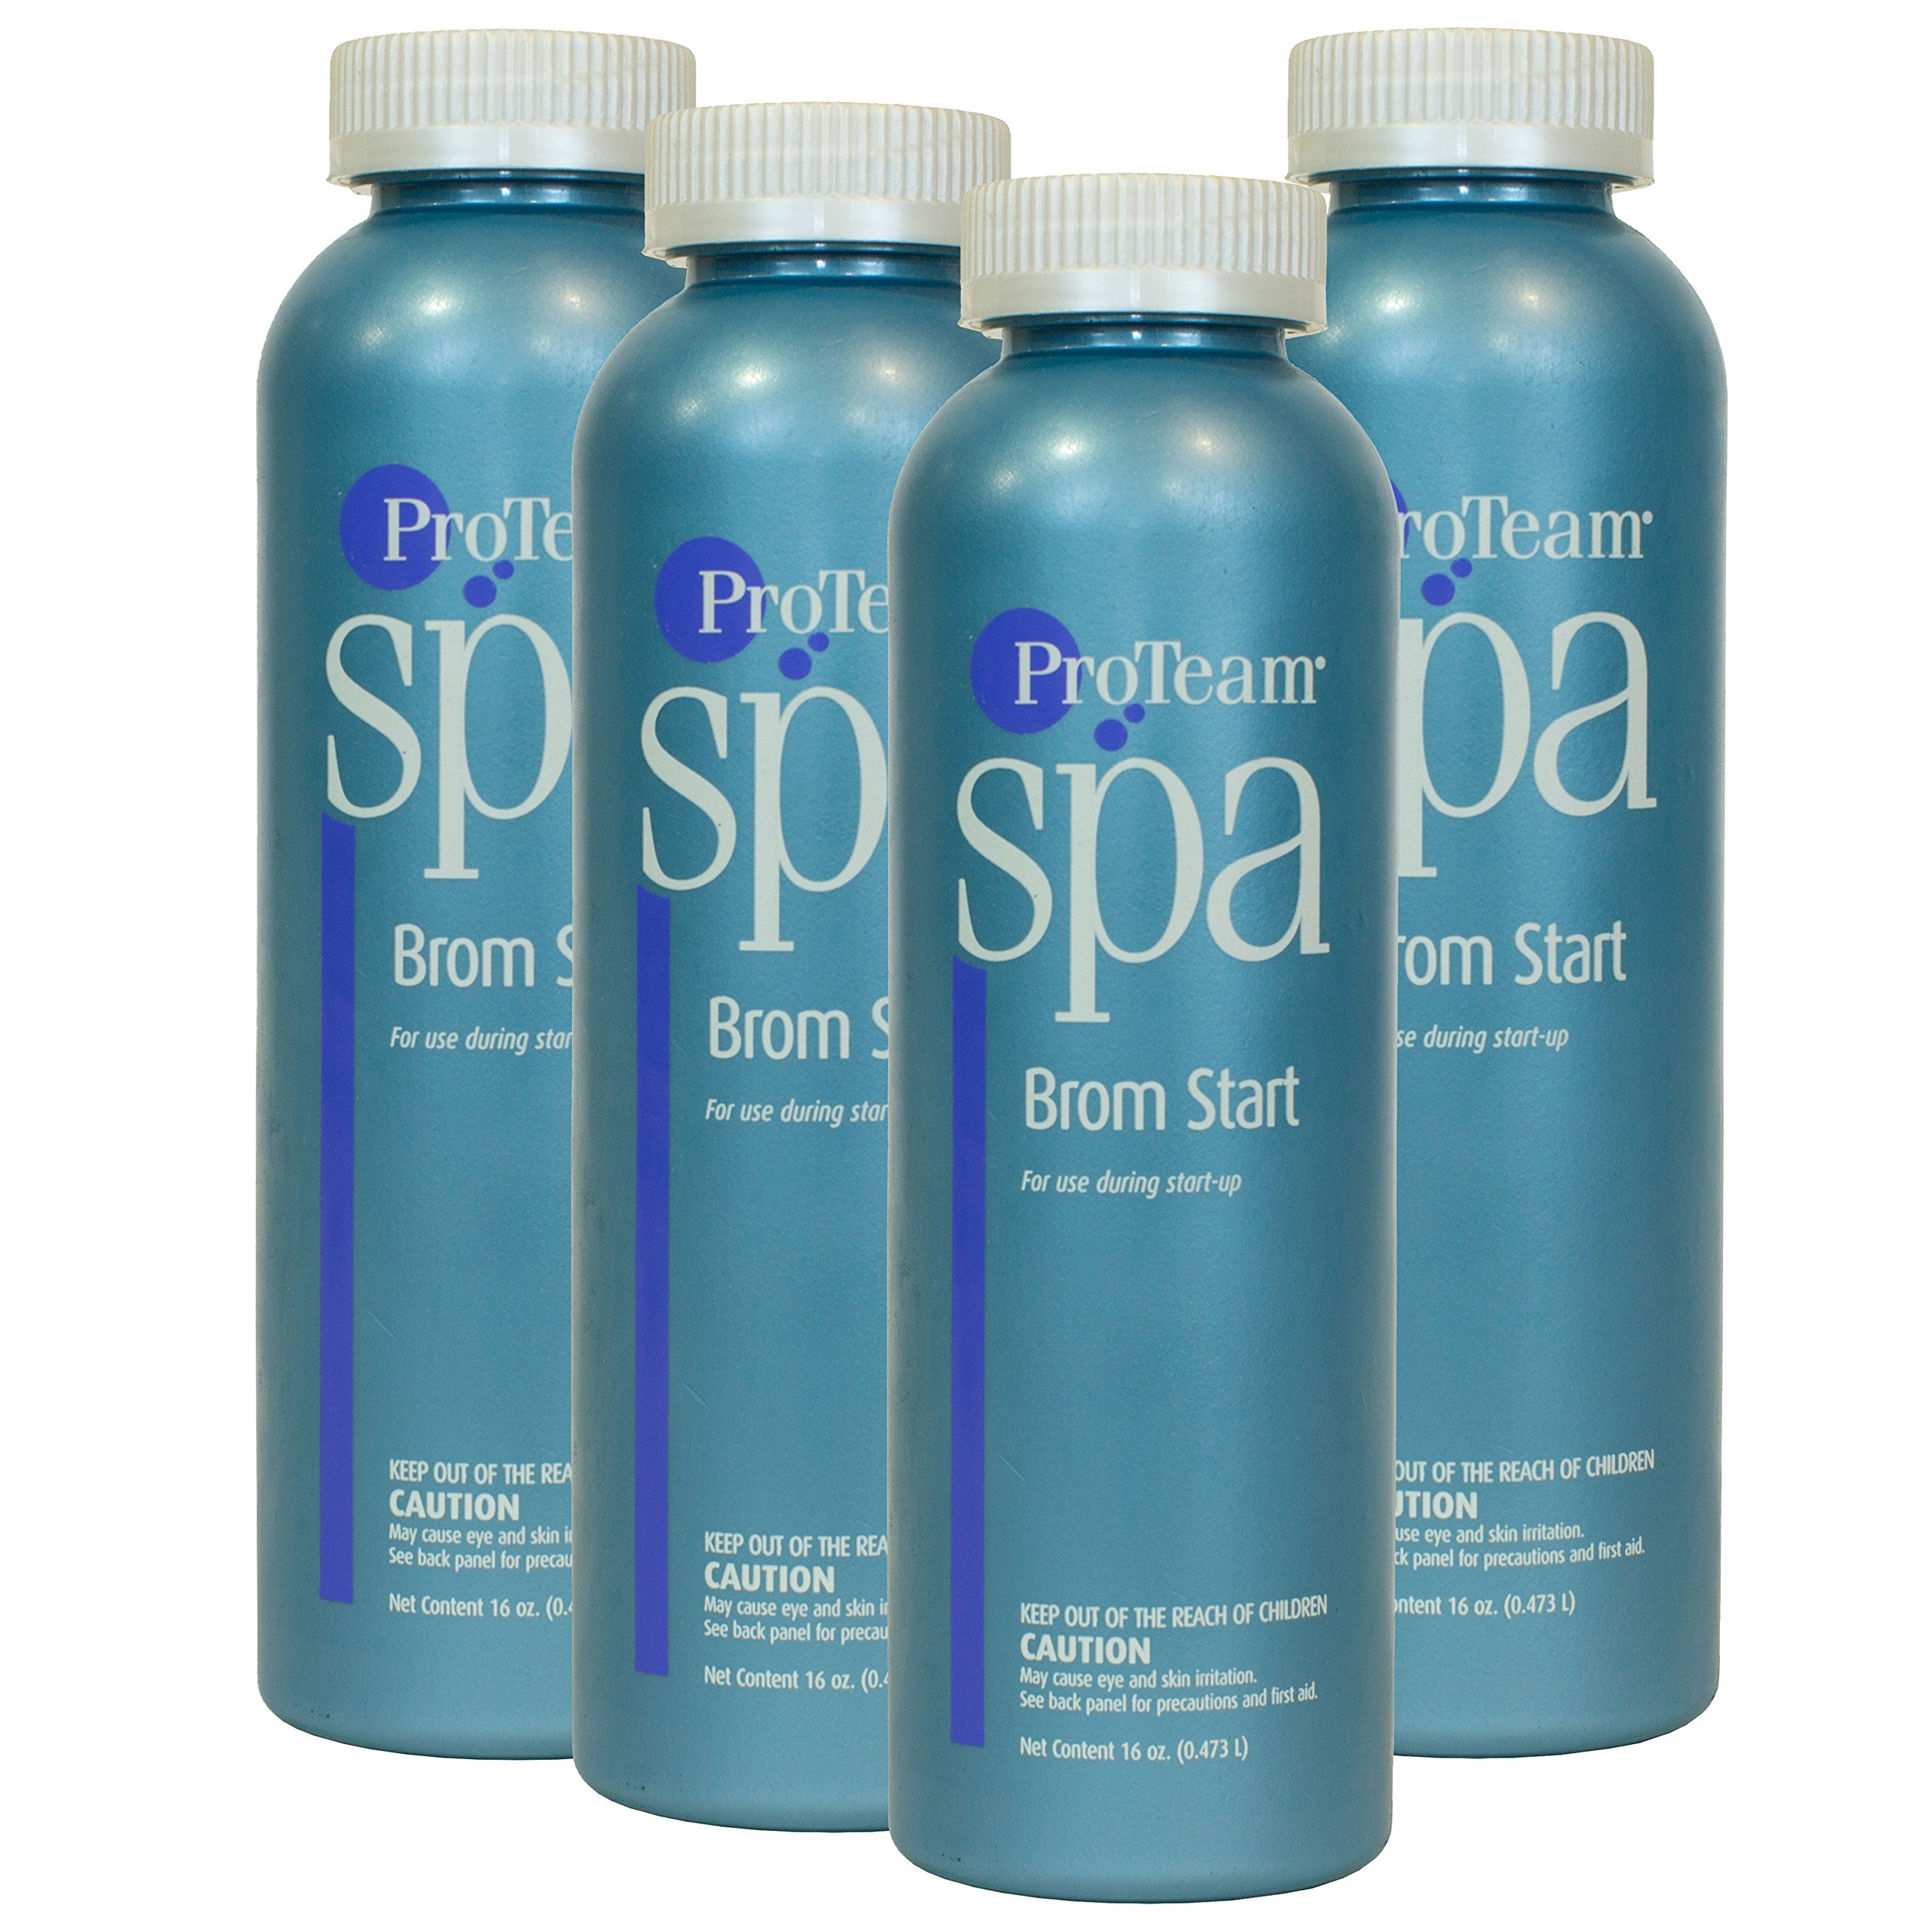 ProTeam Spa Brom Start (1 pt) (4 Pack) by ProTeam